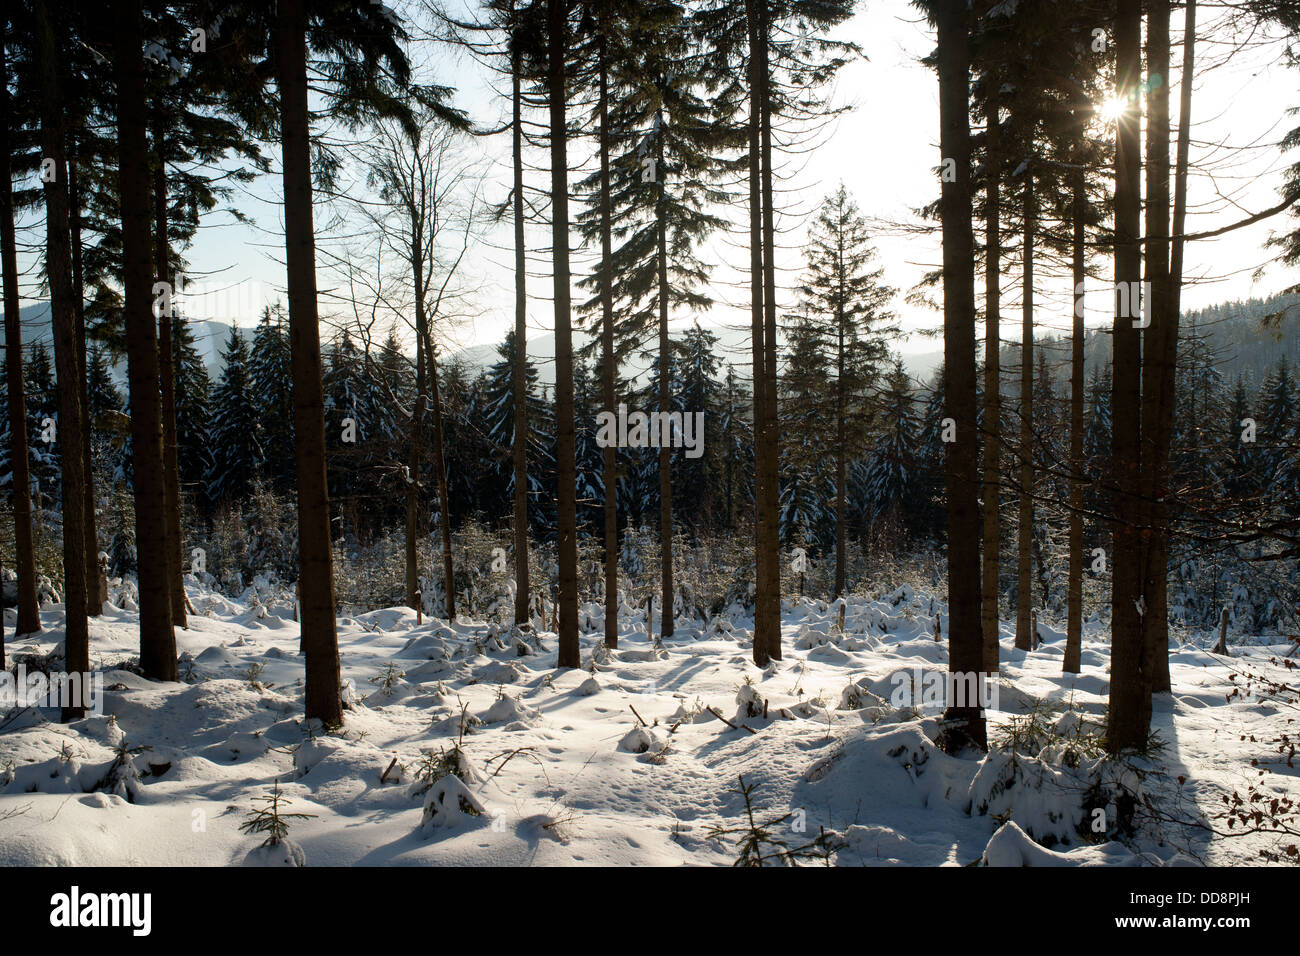 Winter in Karkonosze mountains. Scenery of Jakuszyce cross-country skiing trial. - Stock Image